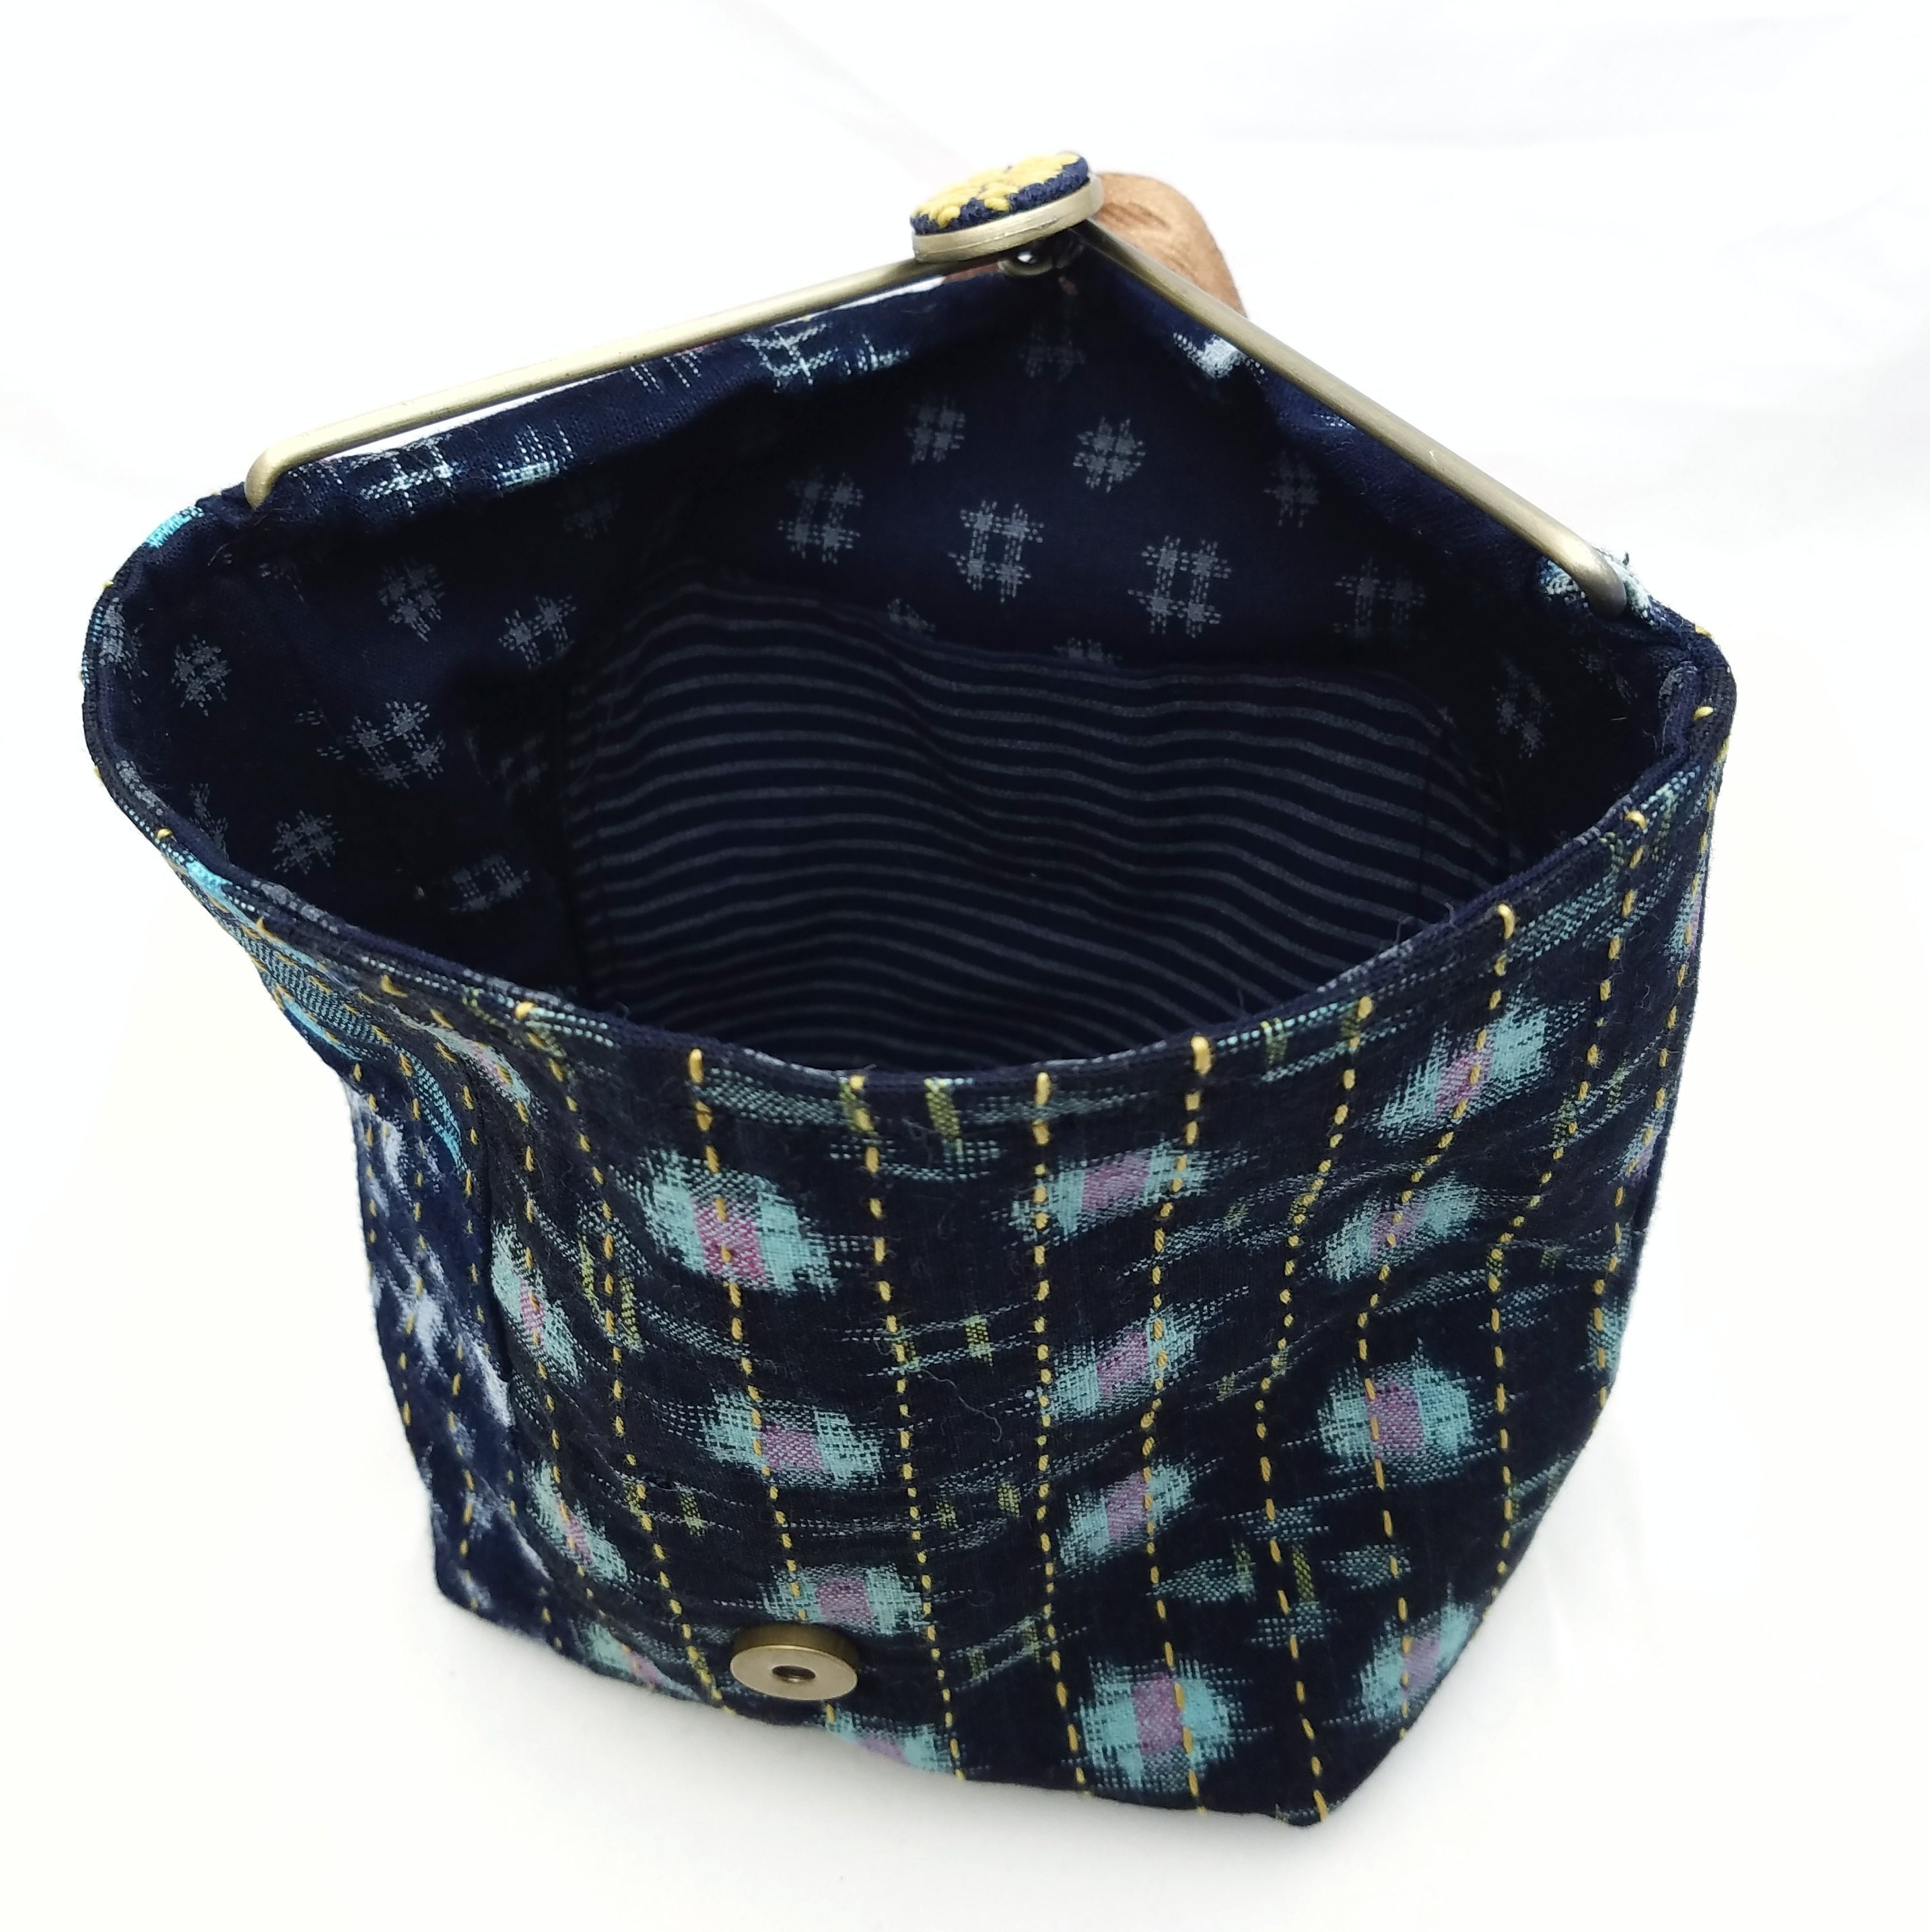 slide clasp closure bag